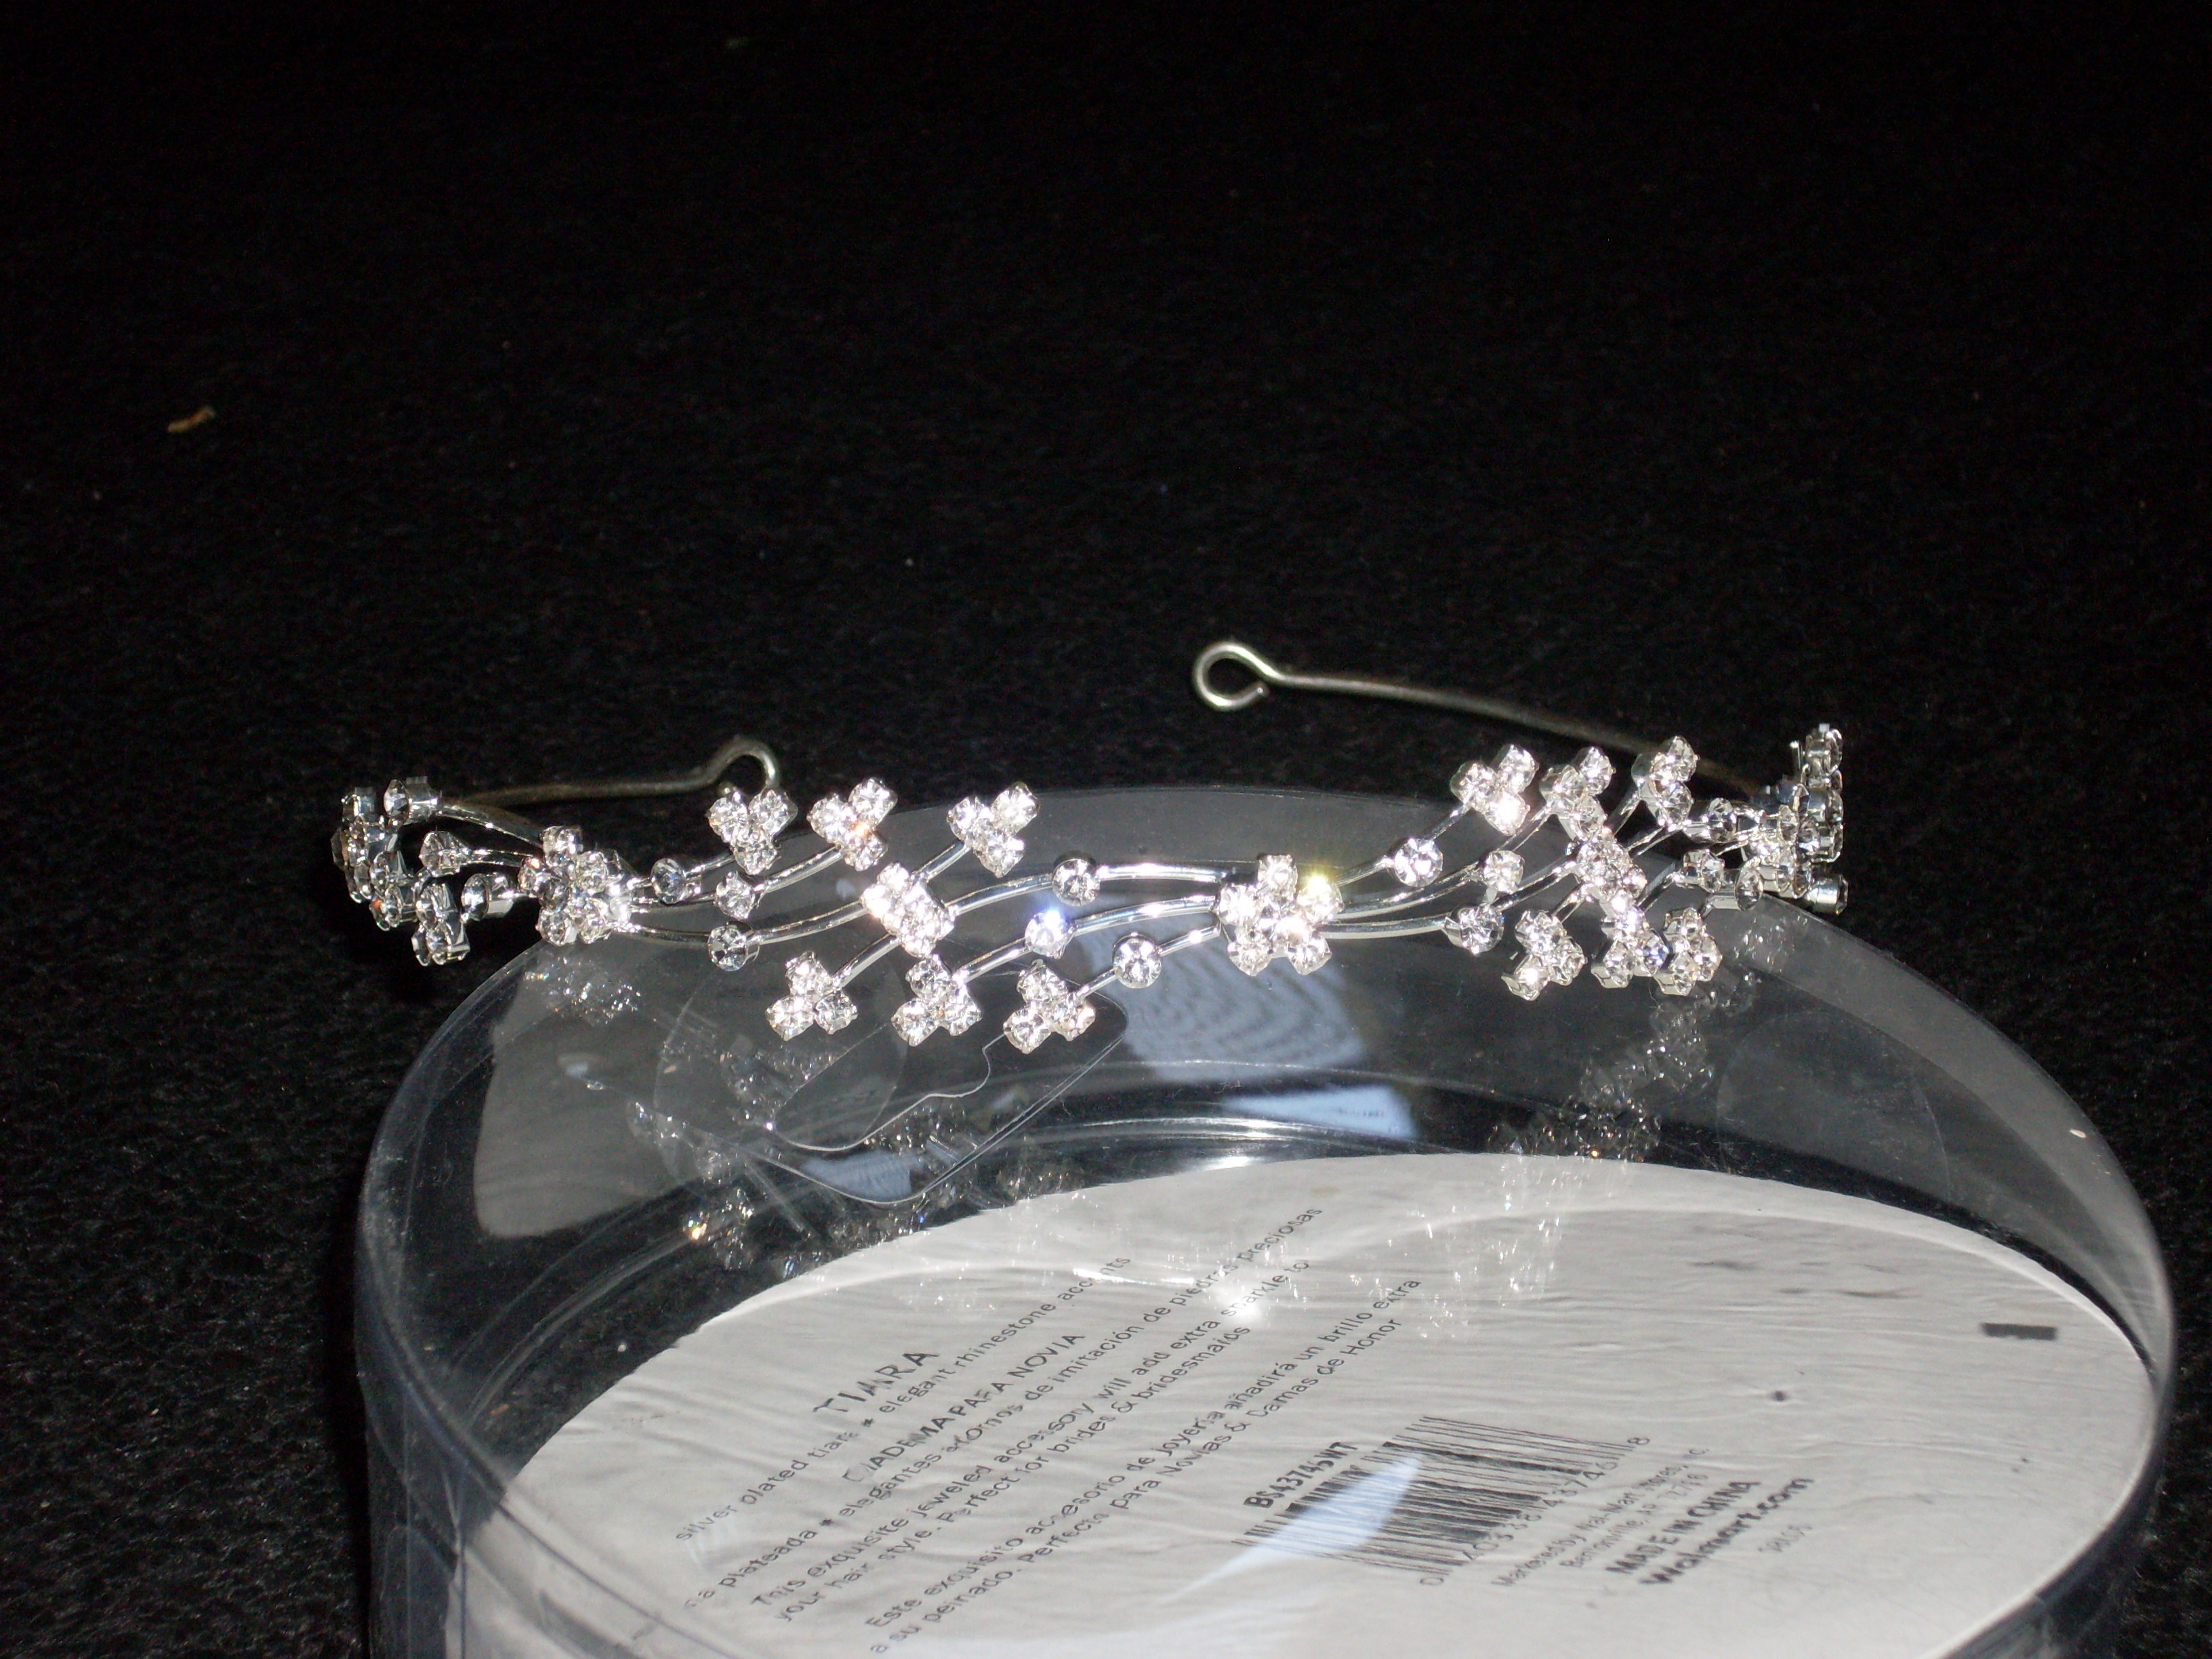 Beauty, Jewelry, silver, Tiaras, Hair, Tiara, Head piece